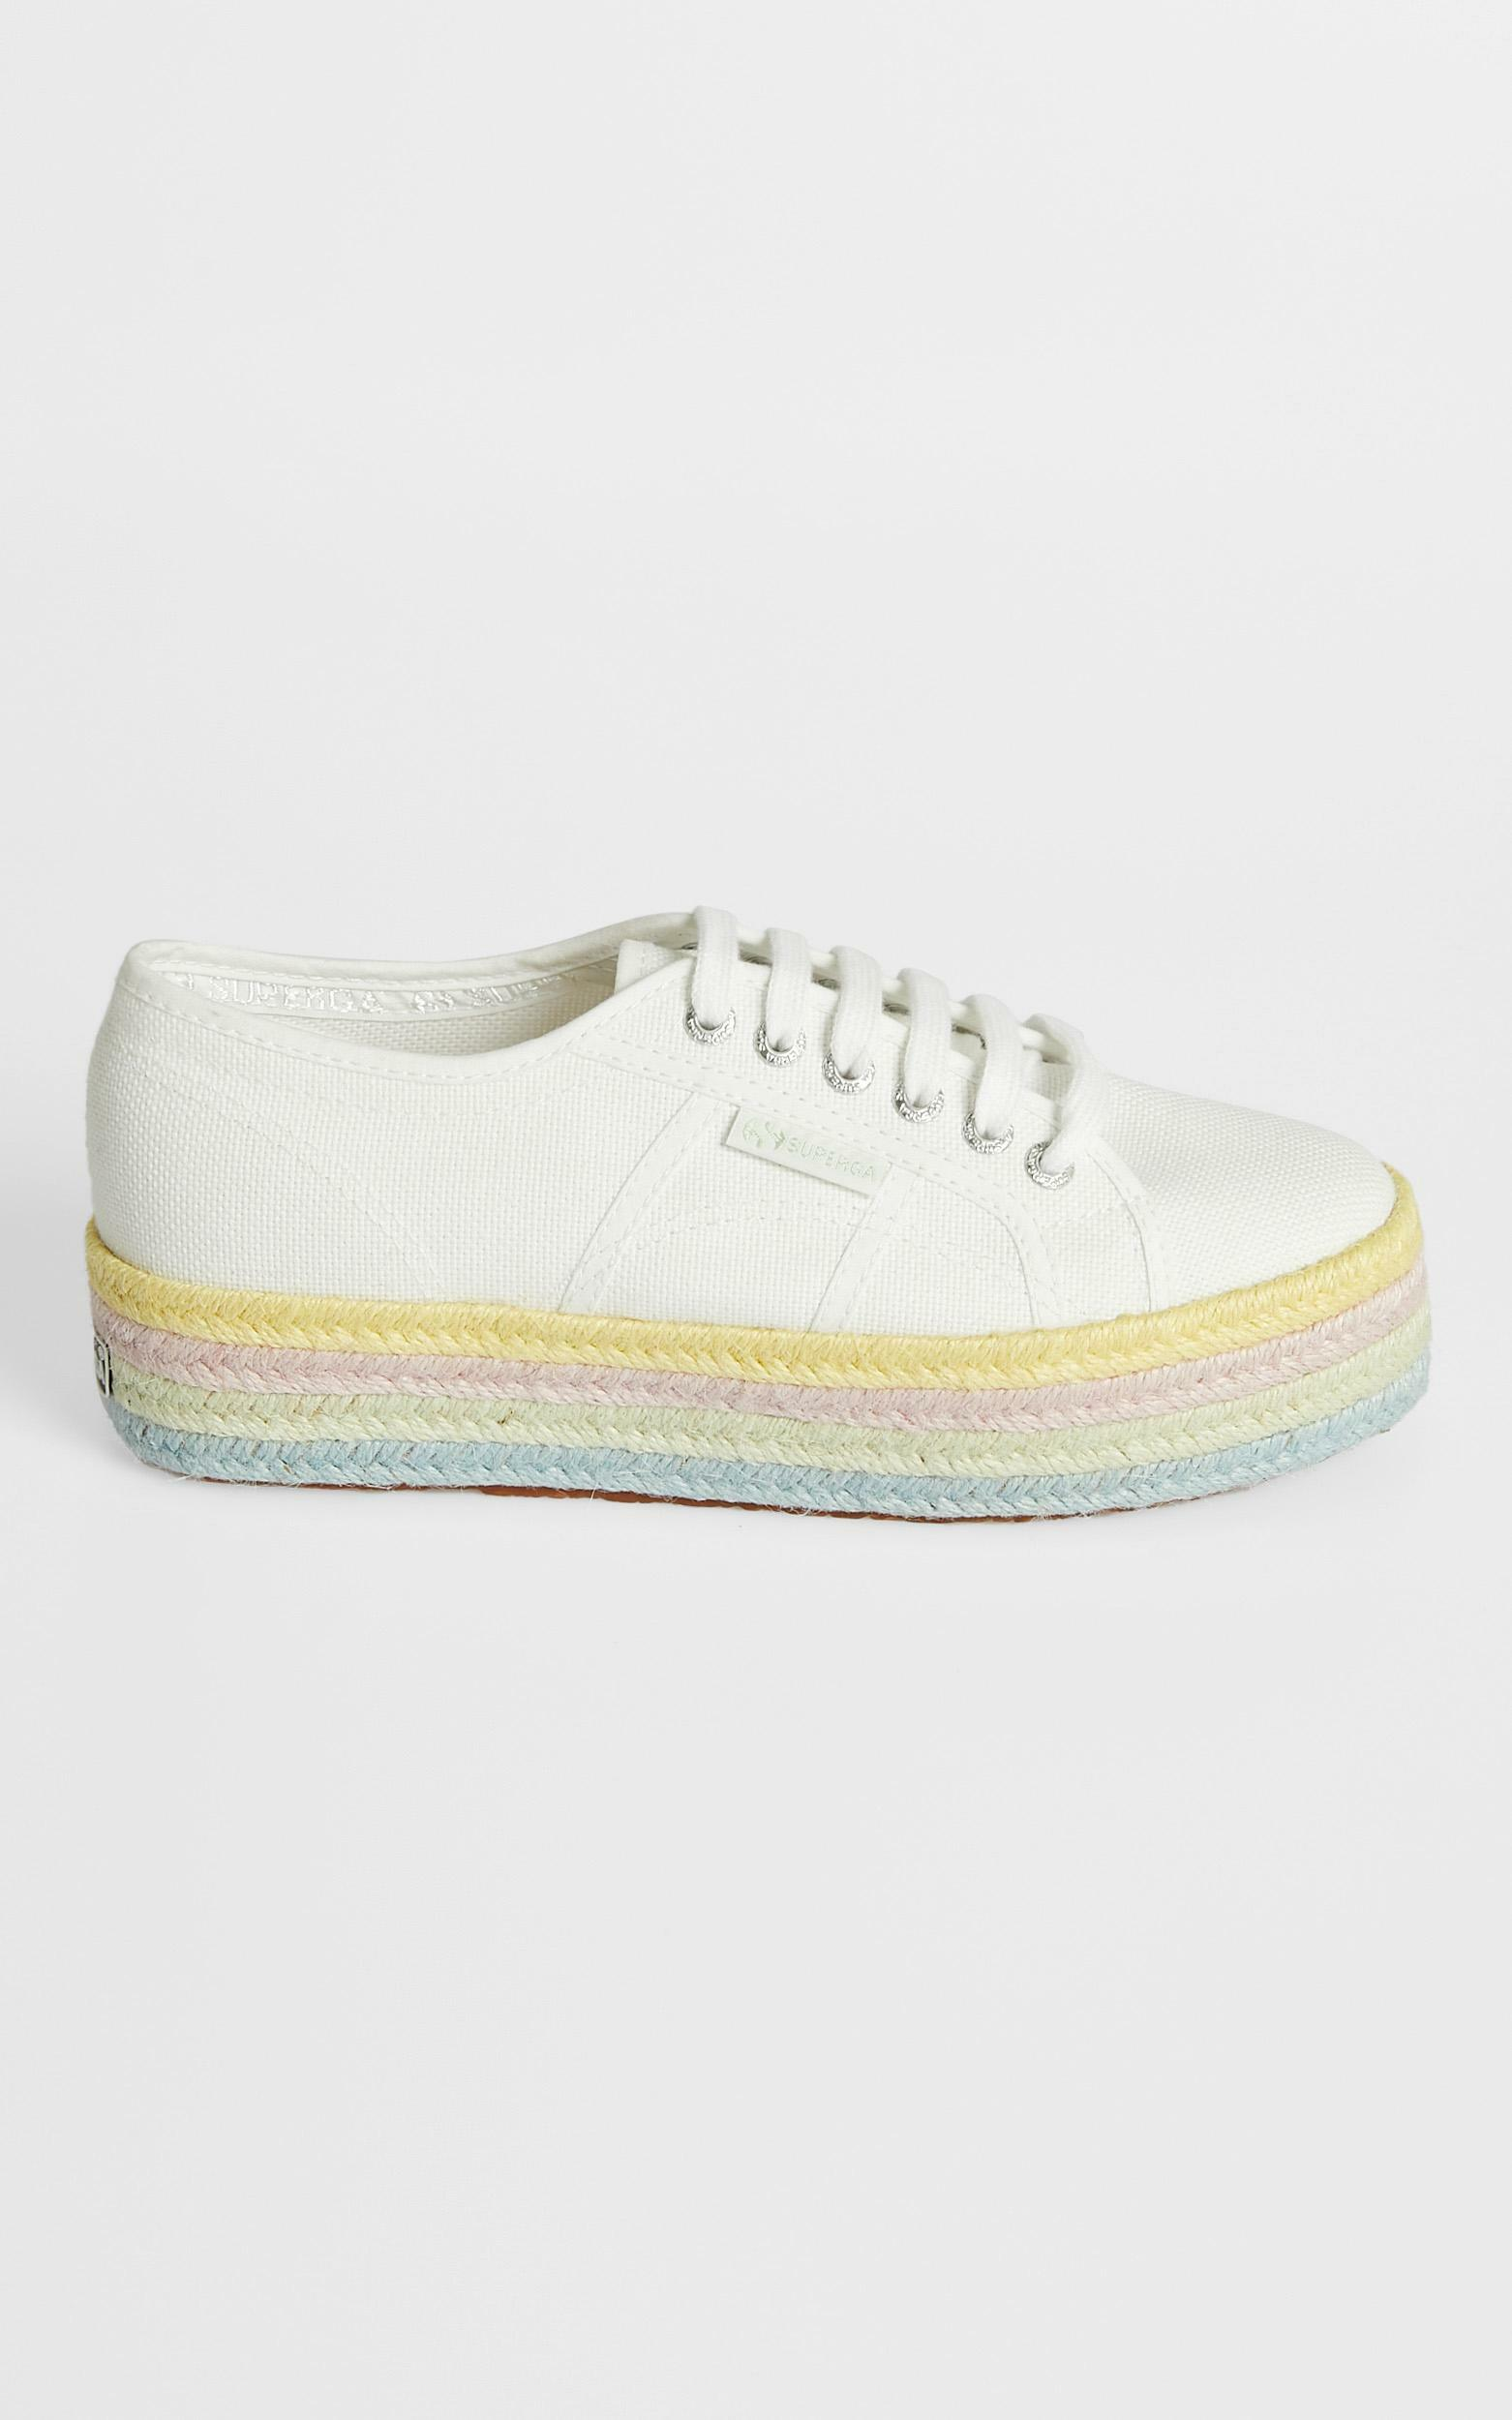 Superga - 2790 COT Color Rope in white - lemonade pale lilac - 5, WHT2, hi-res image number null